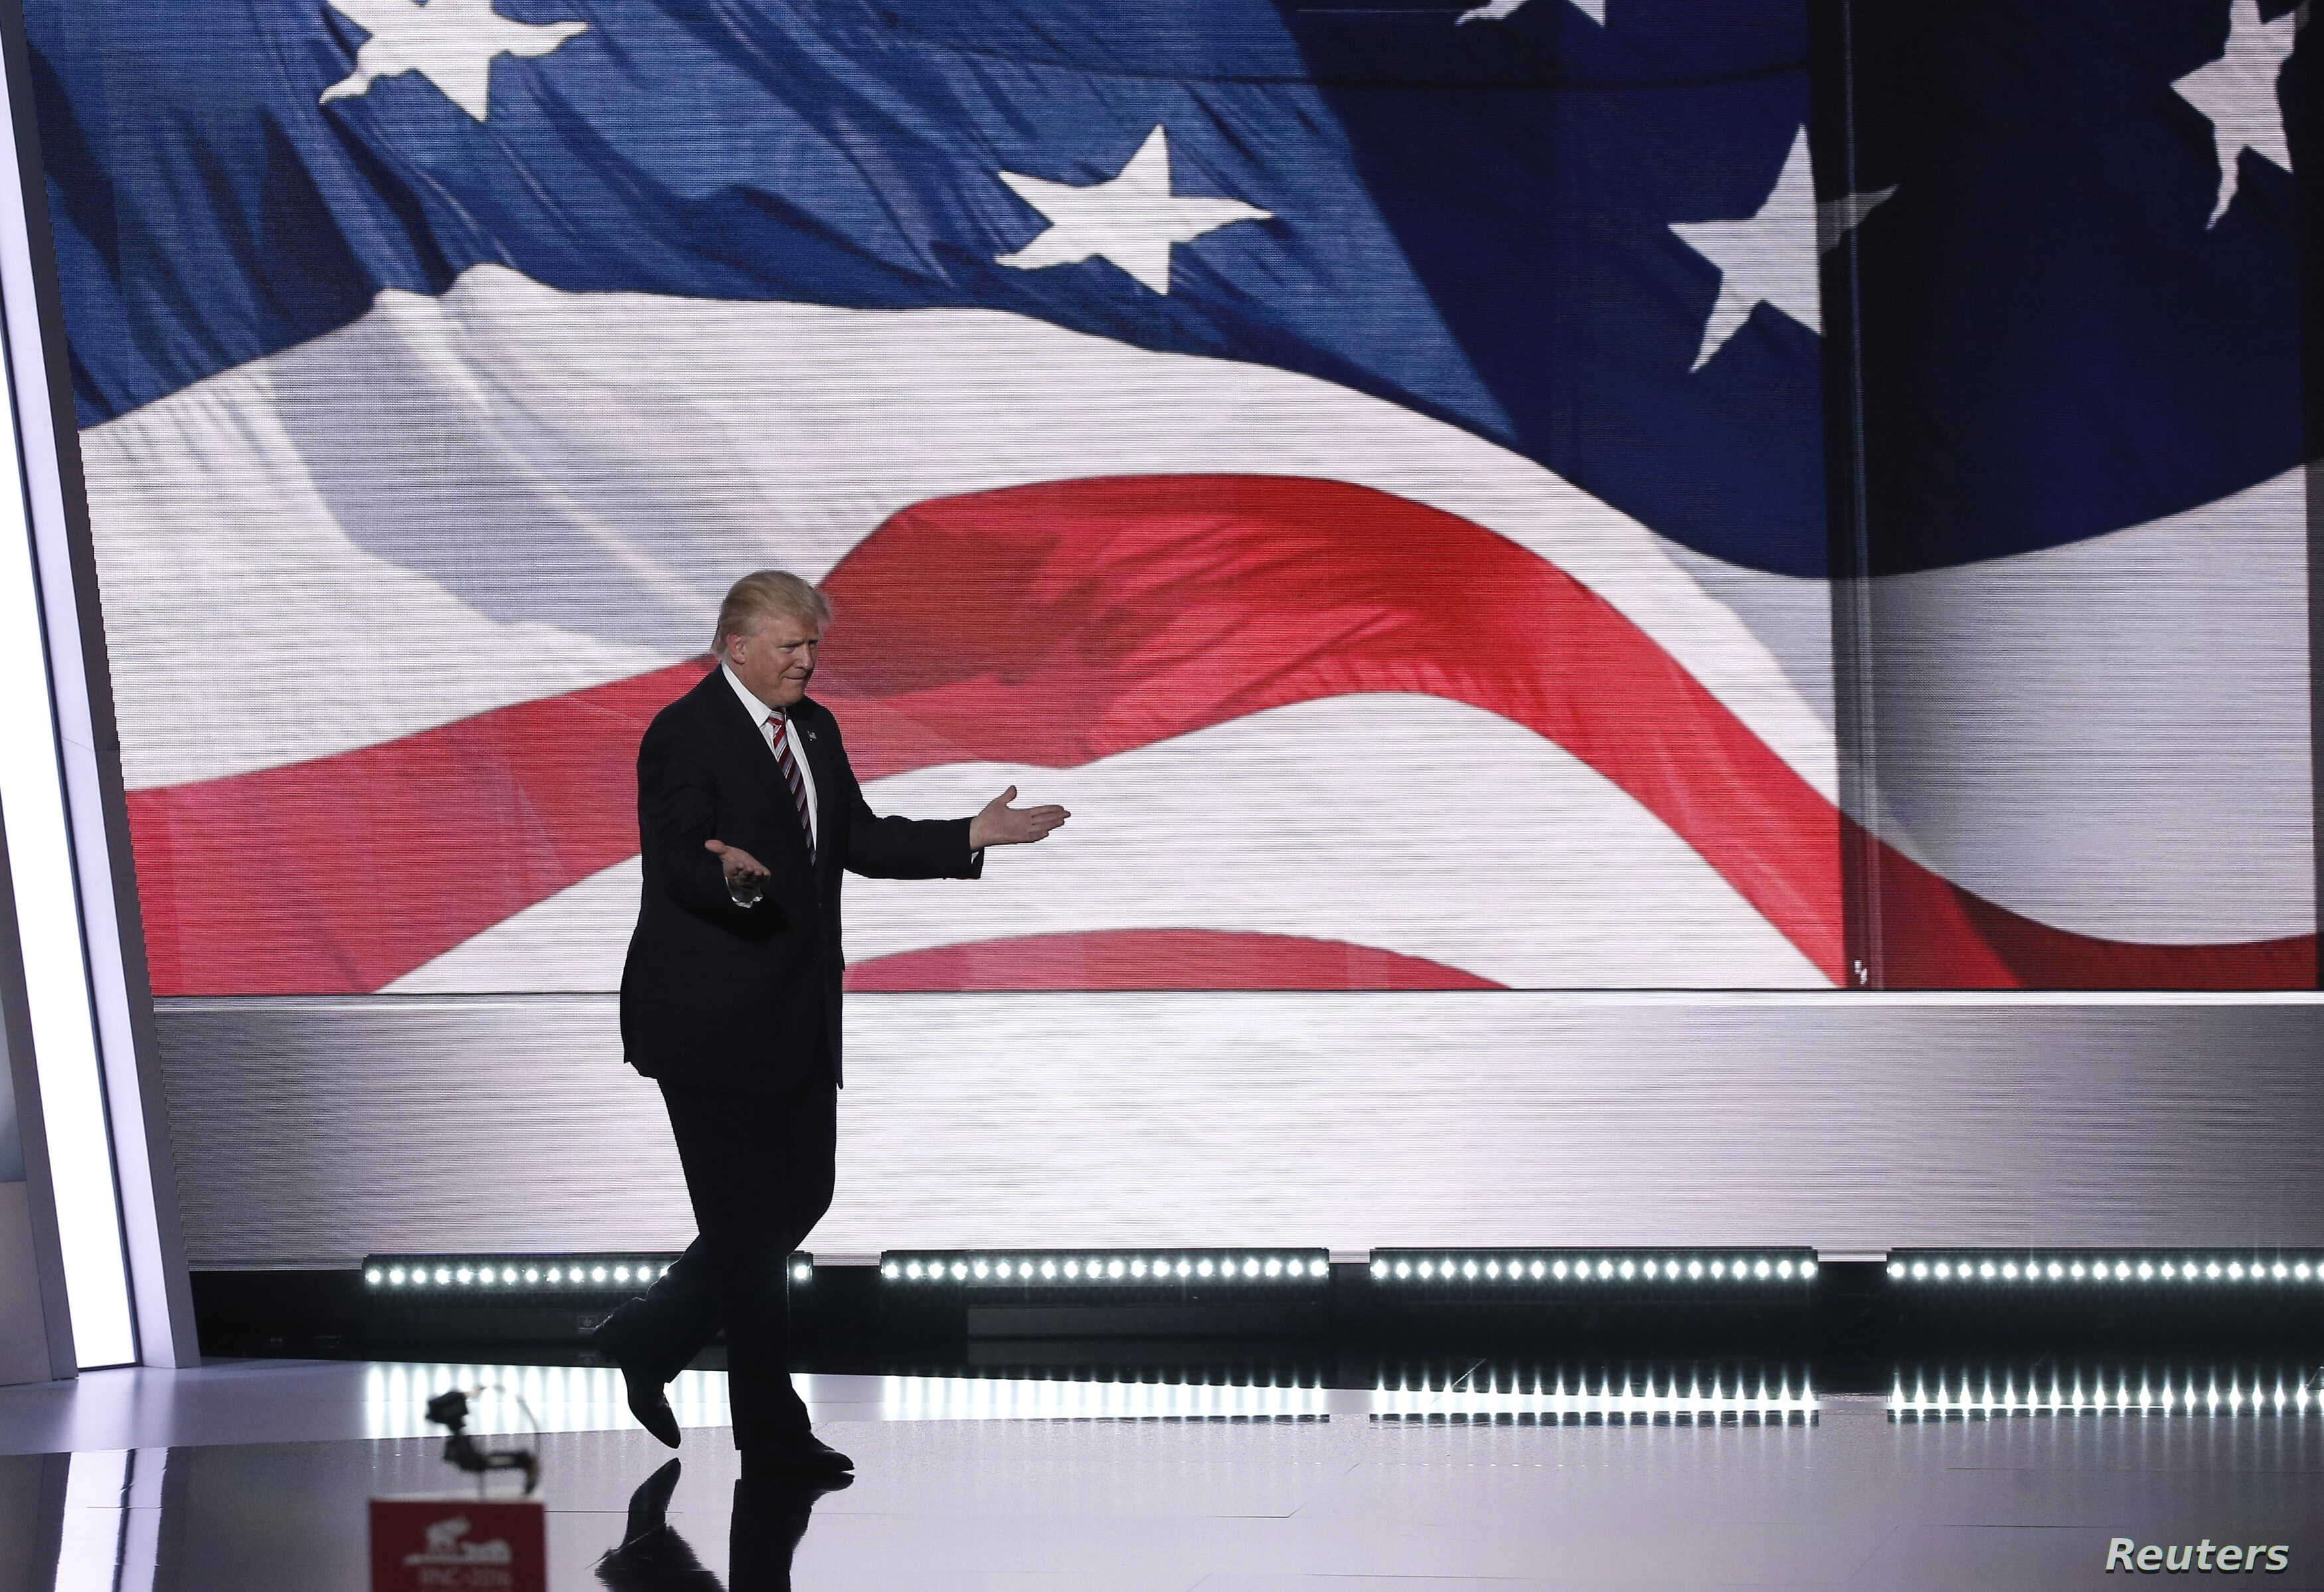 Republican U.S. presidential nominee Donald trump takes the stage near the end of the third day of Republican National Convention in Cleveland, Ohio, U.S. July 20, 2016.